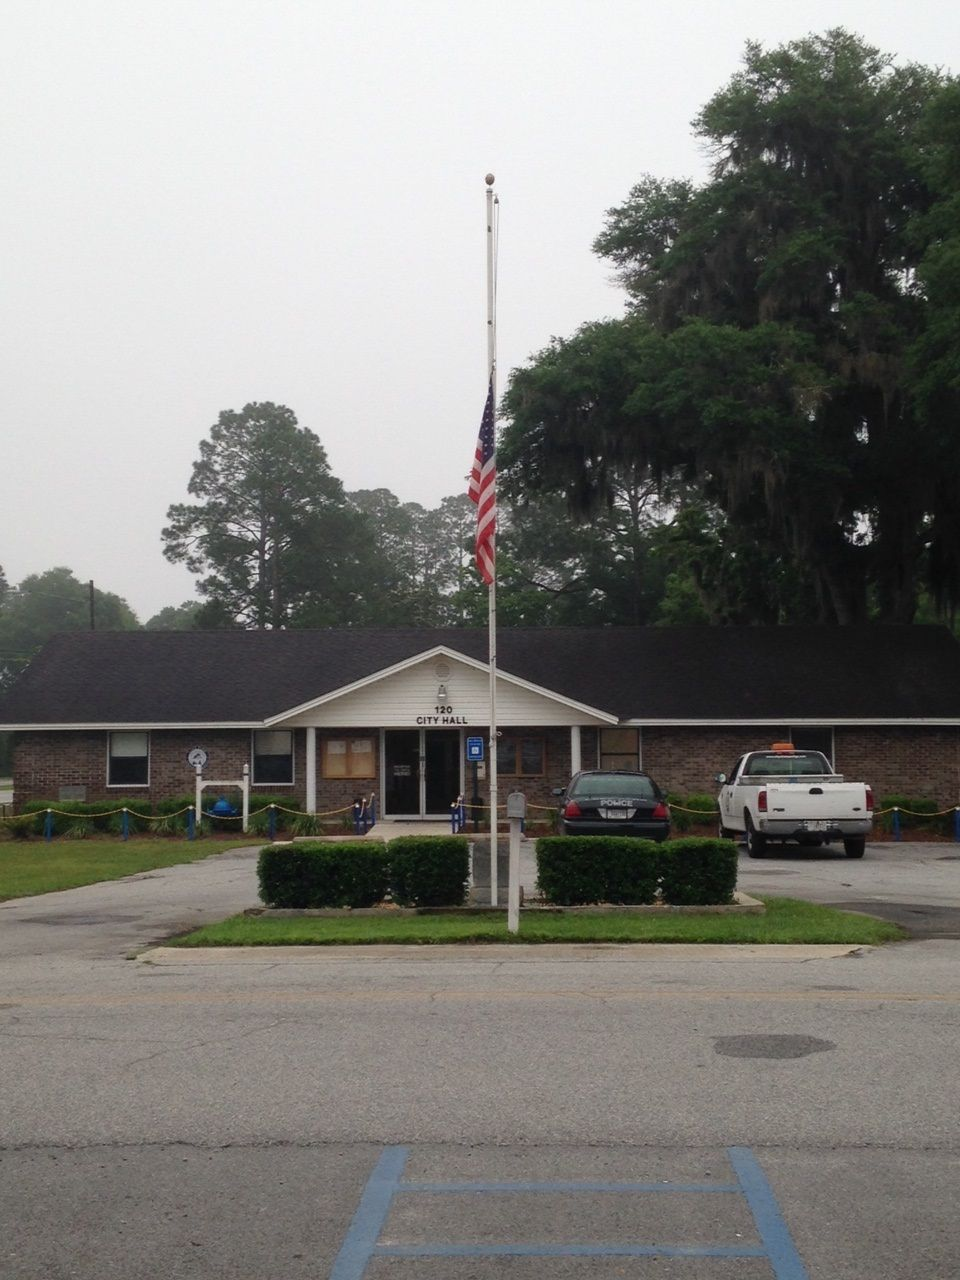 Flag flown at half-staff in protest